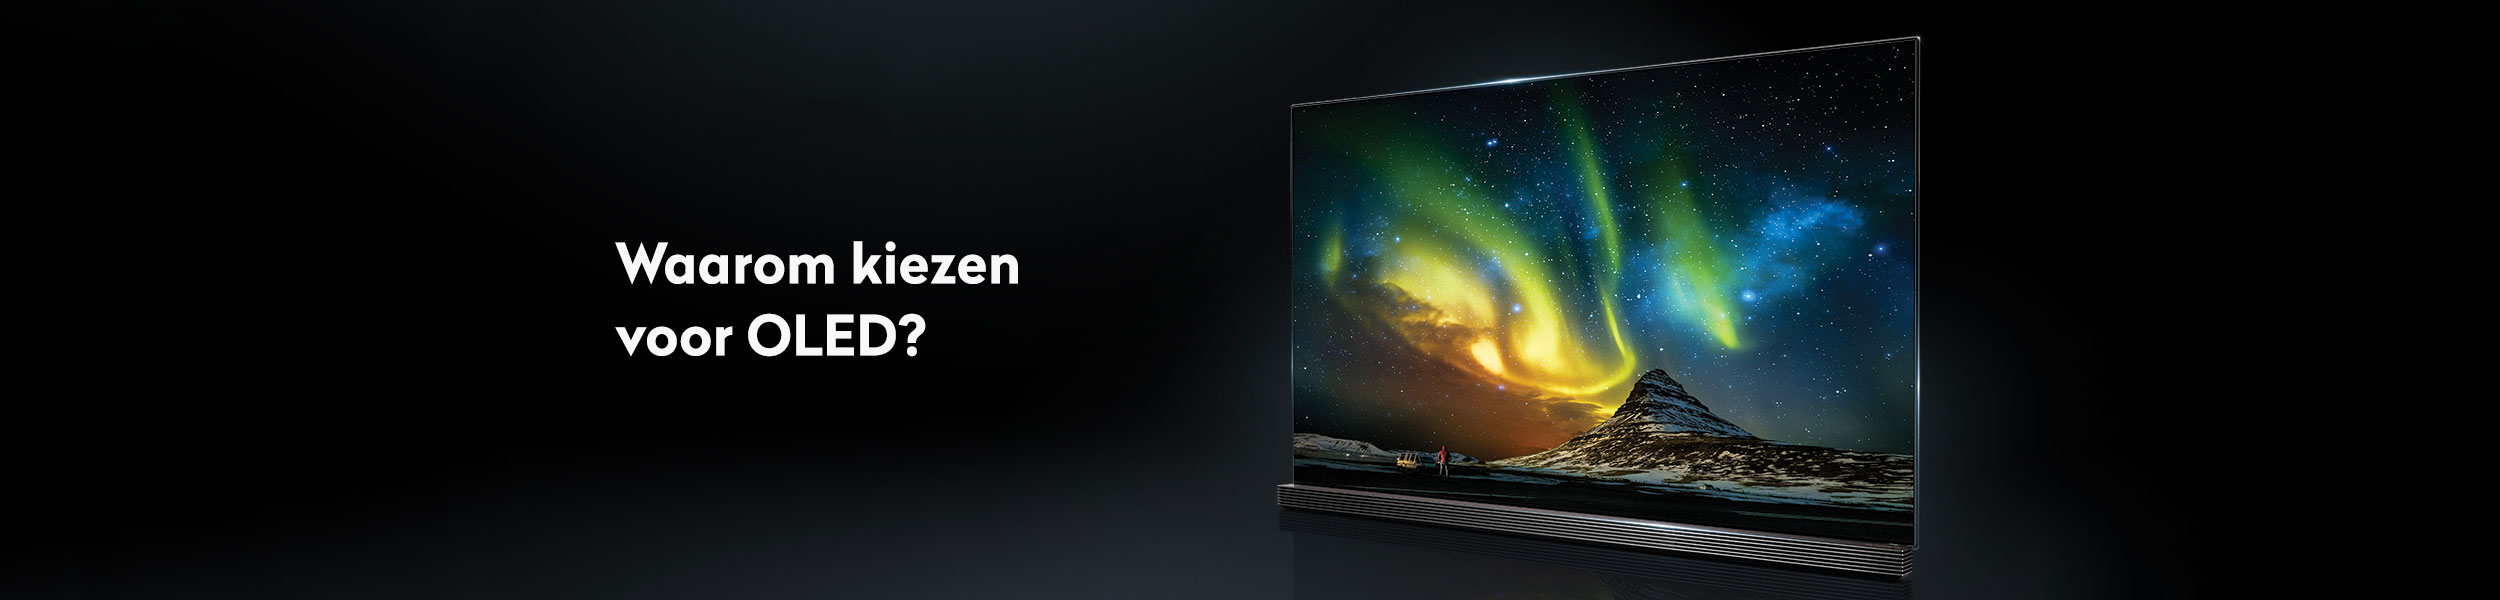 oled televisies banner